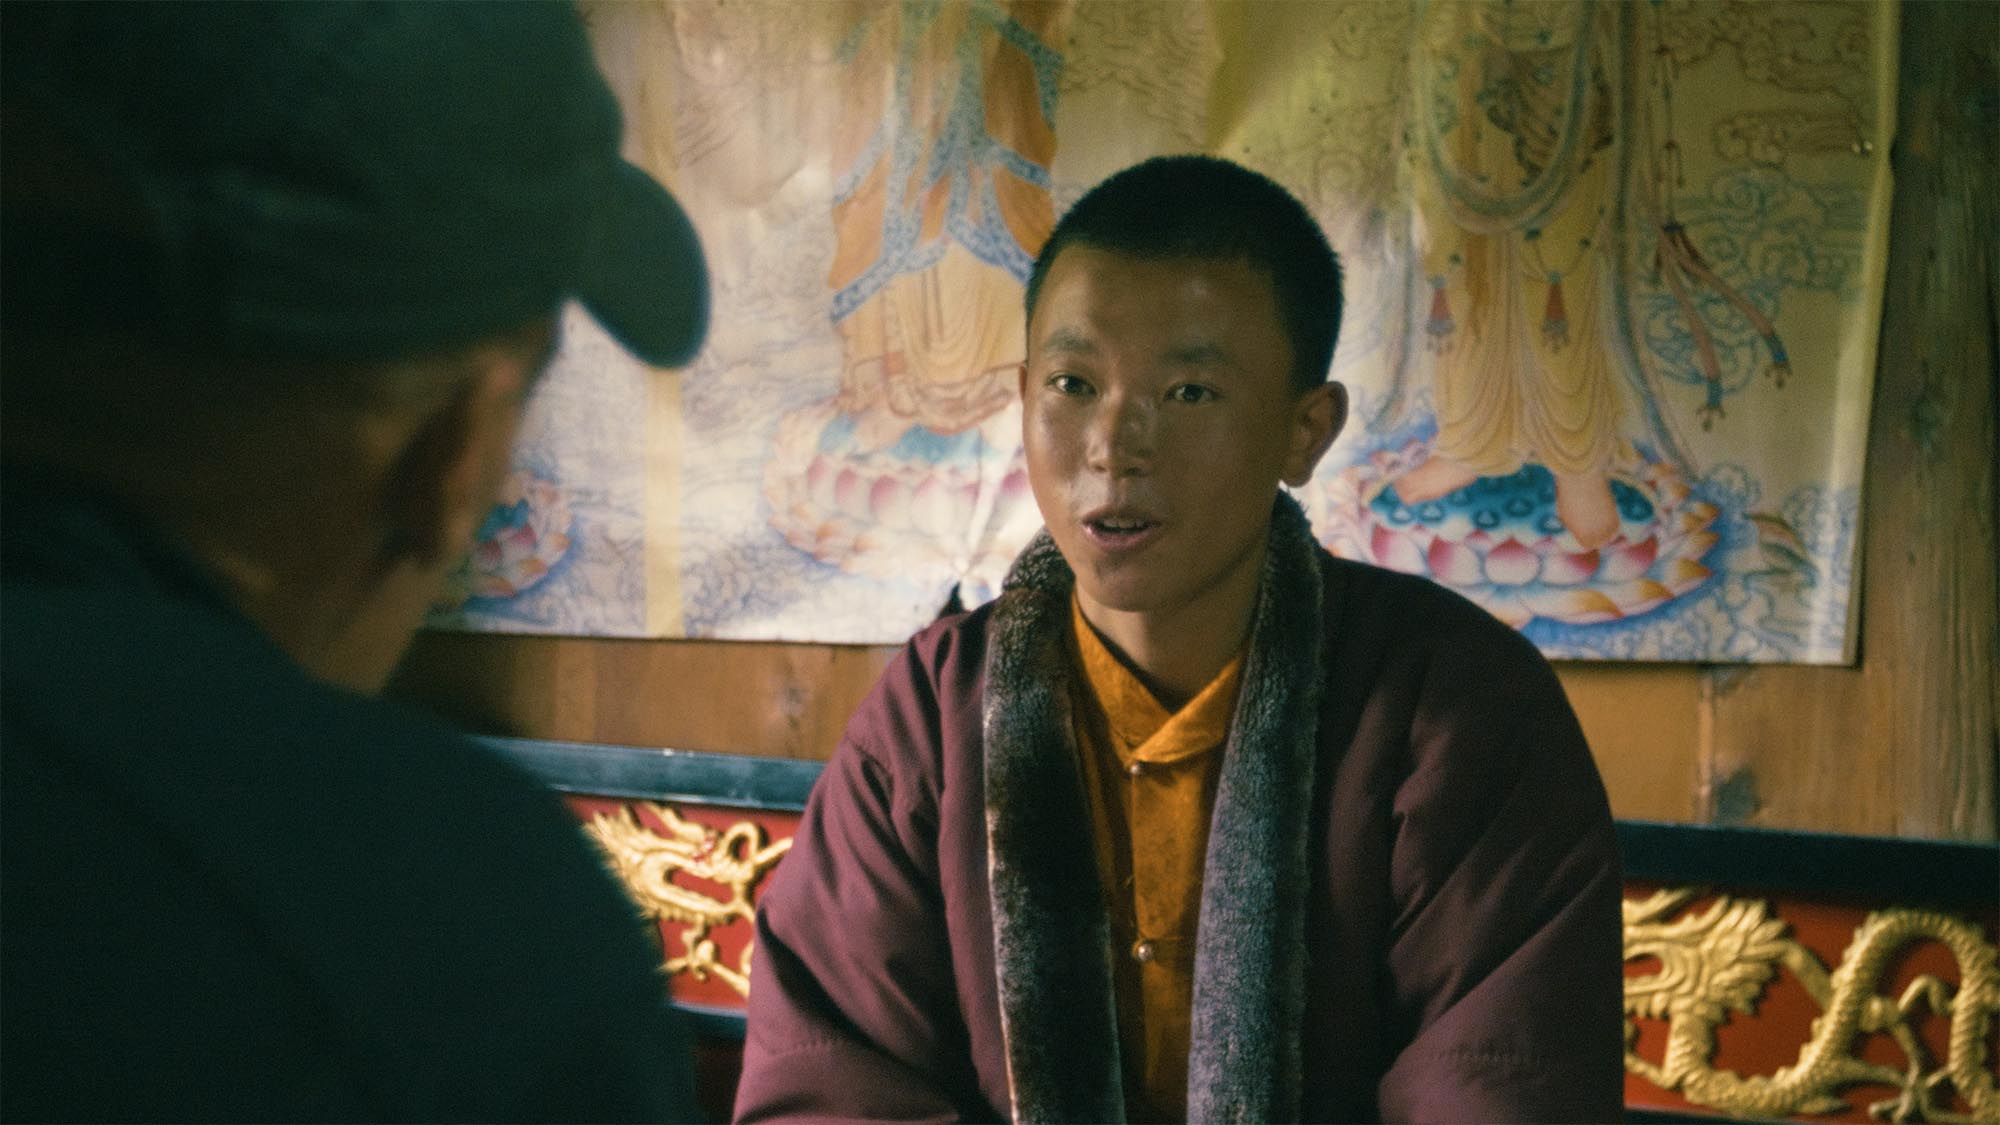 We made friends with this teenage Buddhist monk